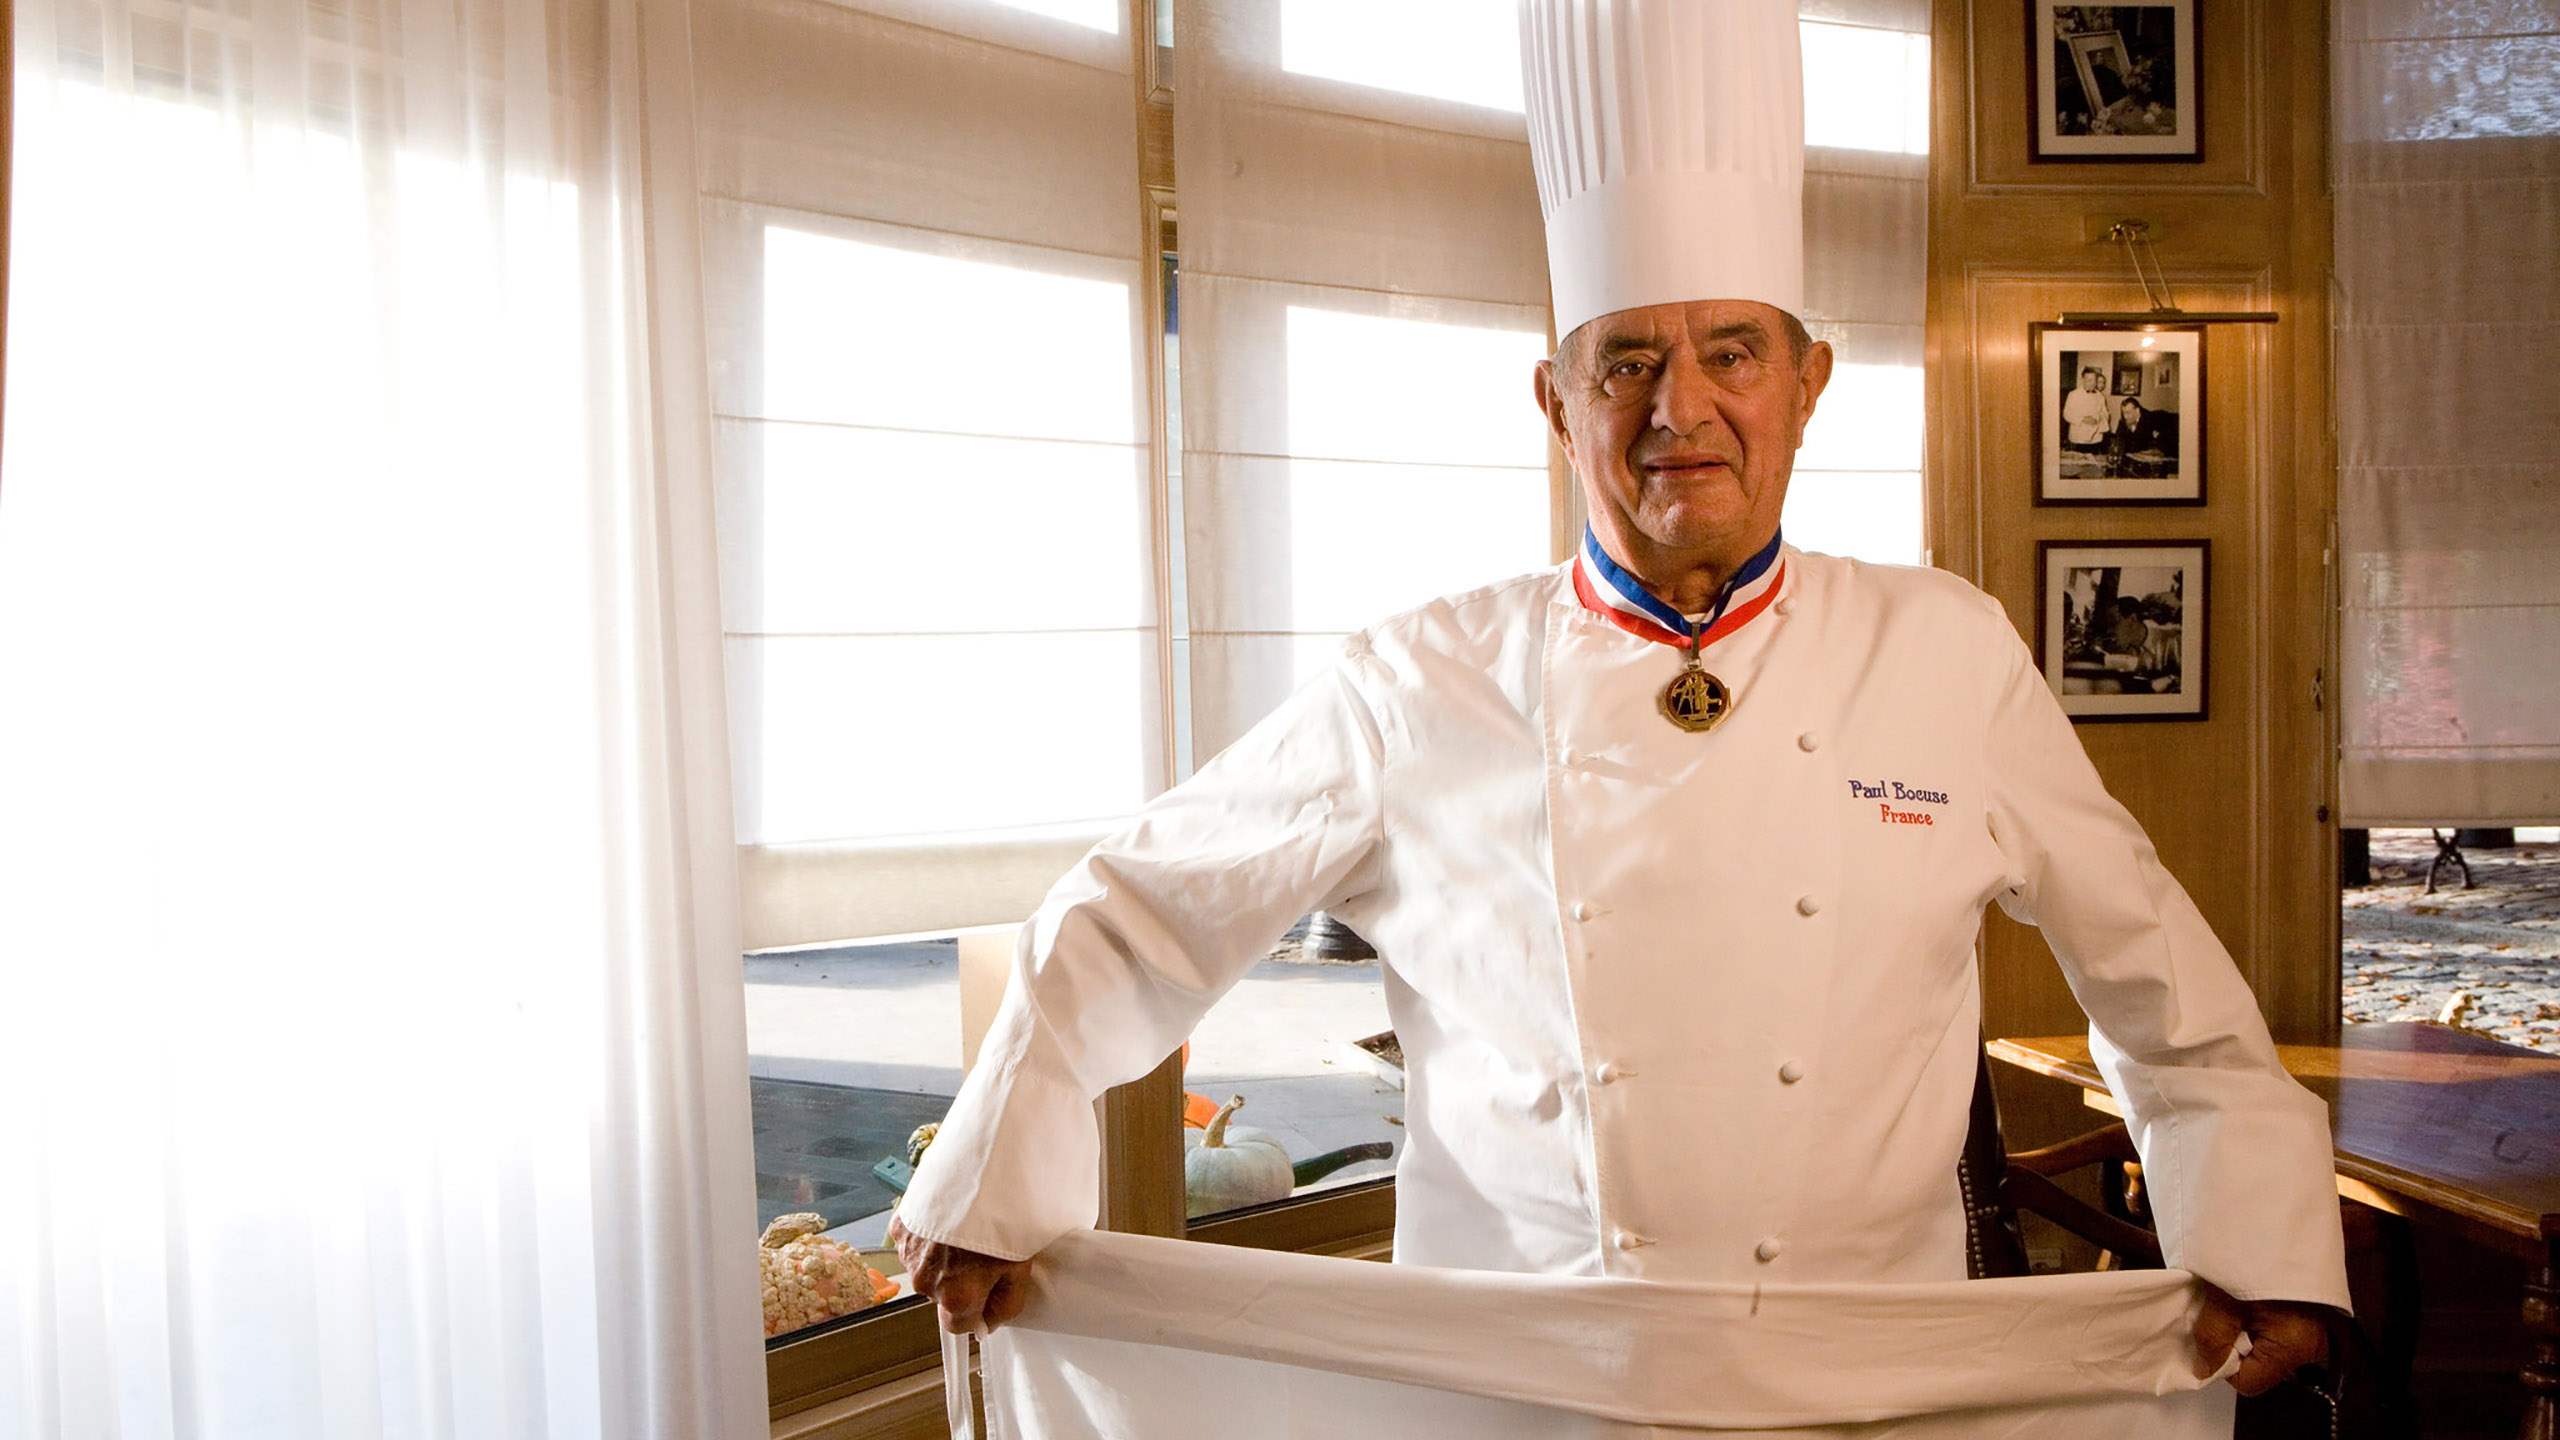 Paul Bocuse, chef, Ratatouille, chef francés